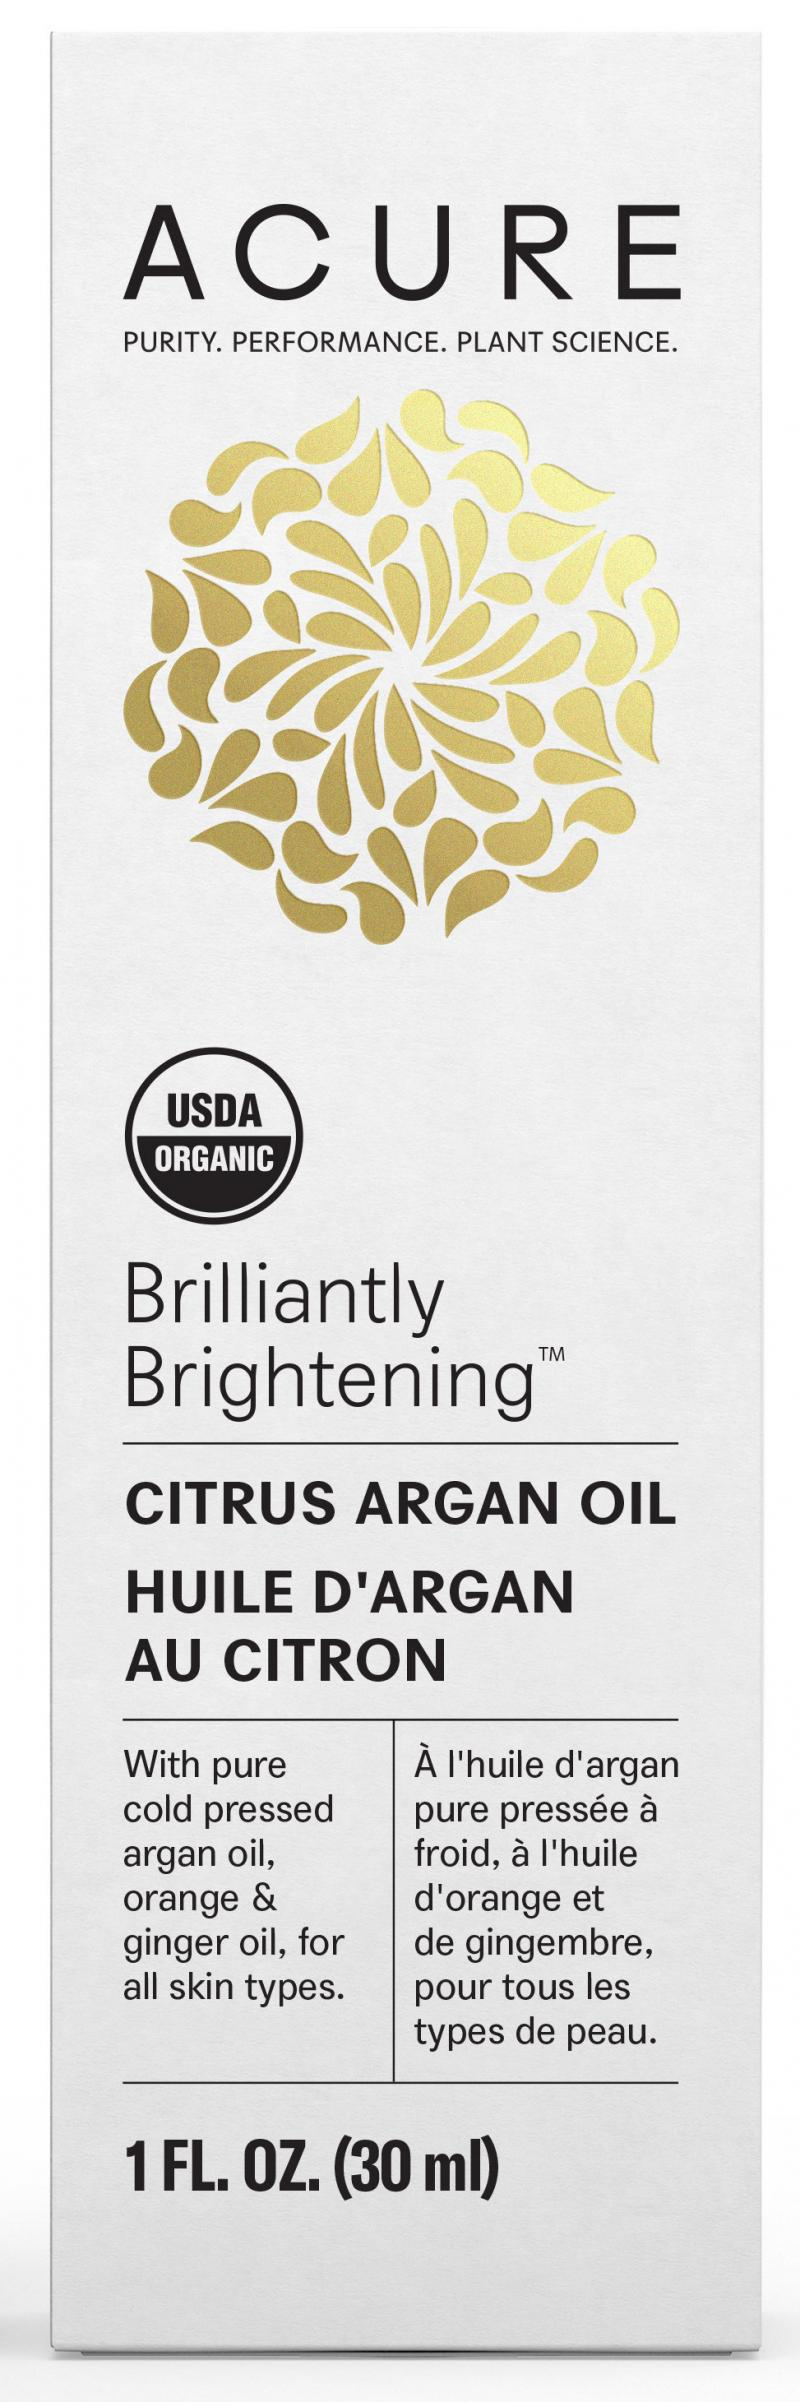 Citrus Argan Oil